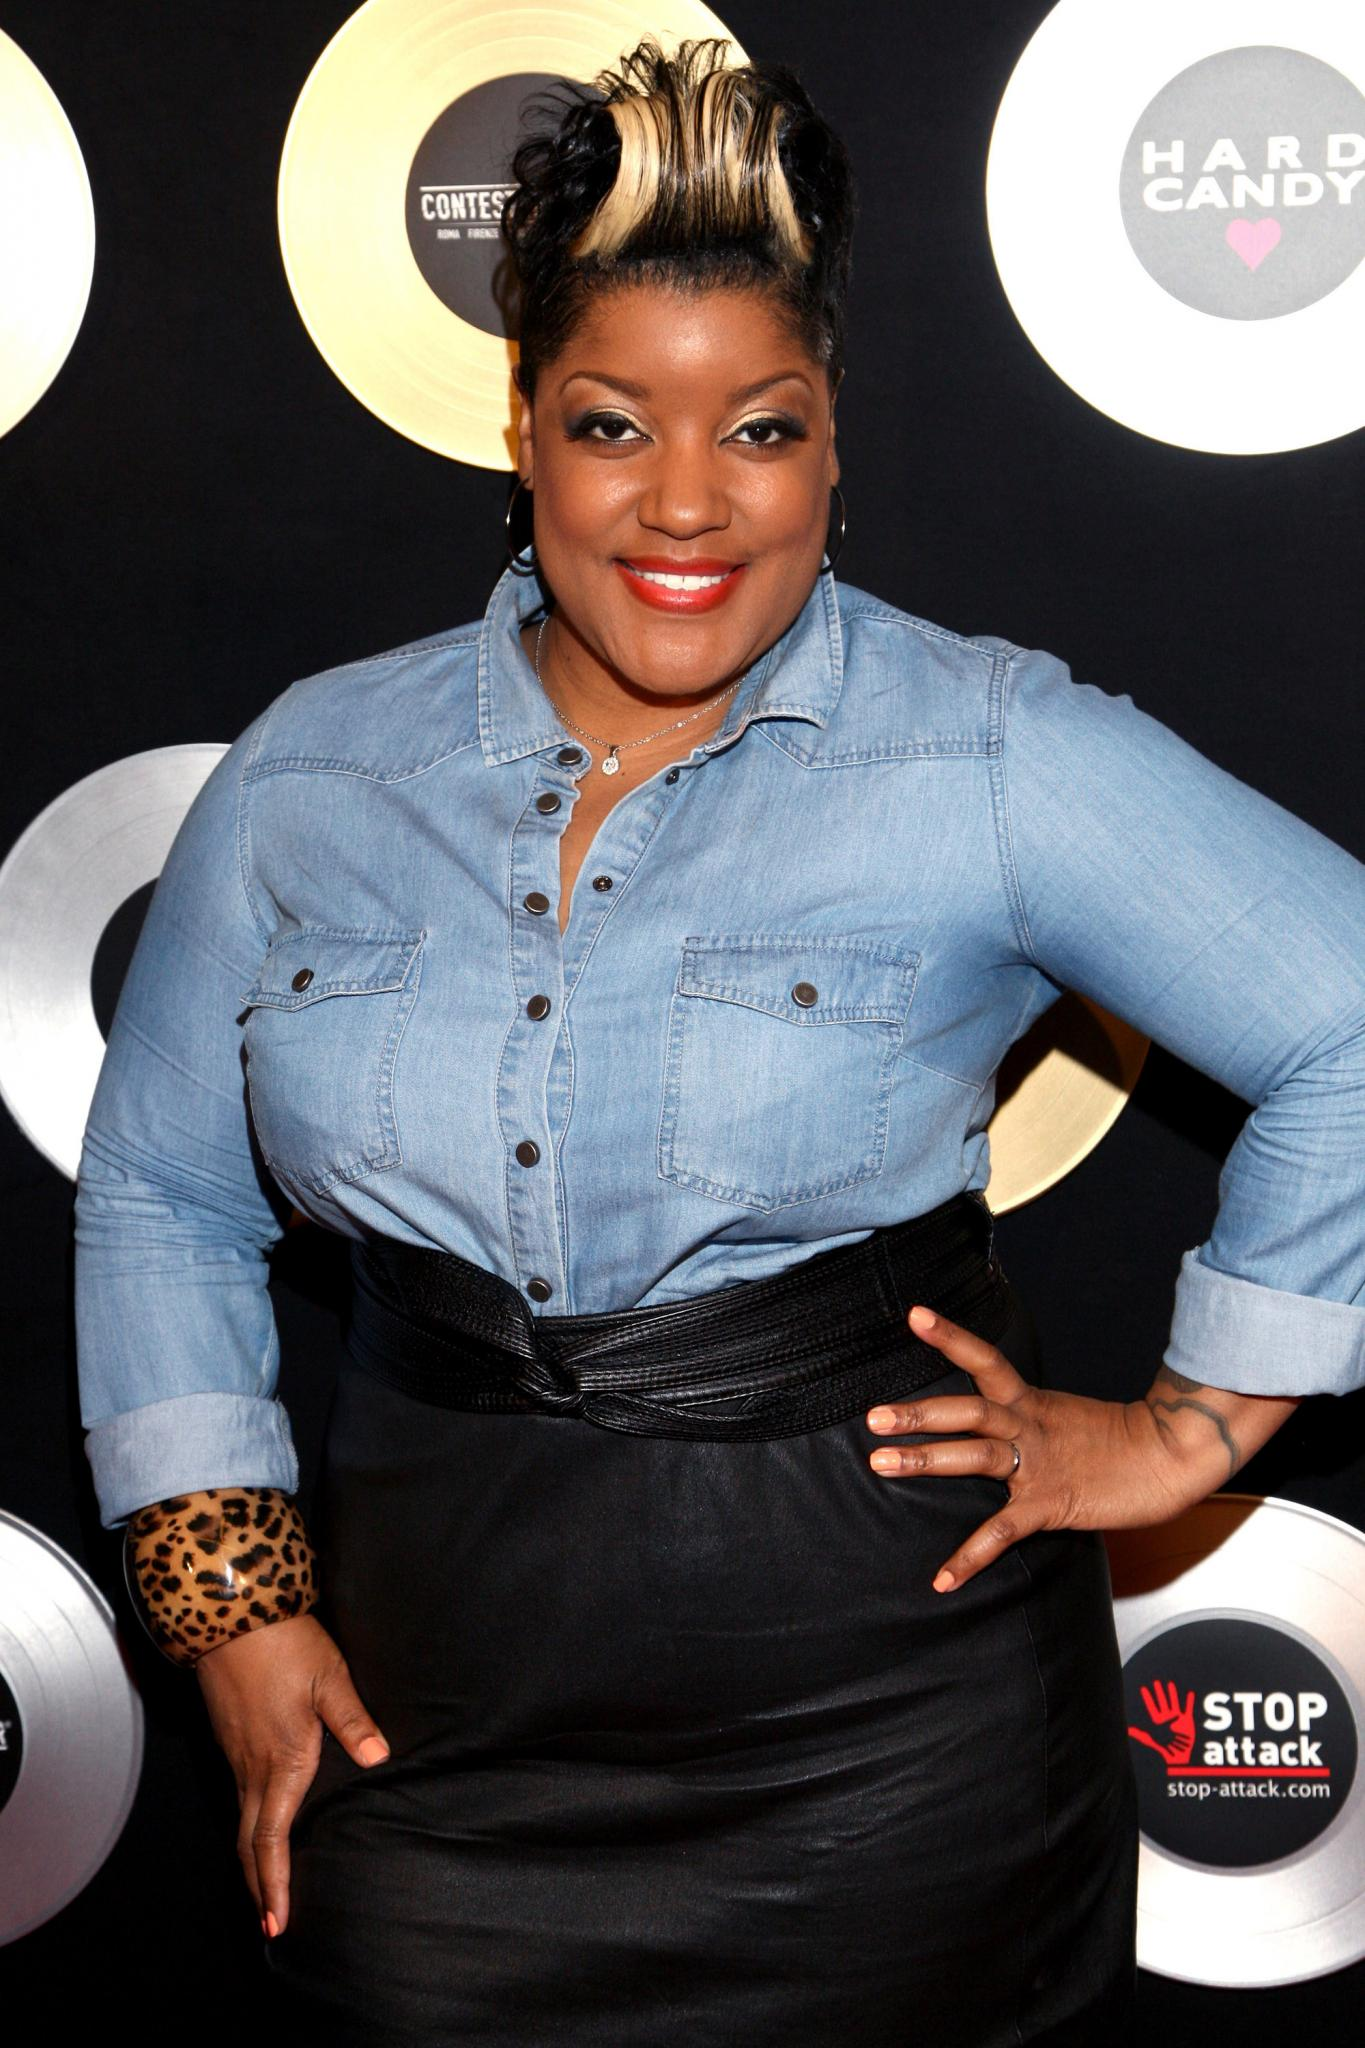 Anita Wilson Shares Upbeat Gospel Songs to Supercharge - Essence